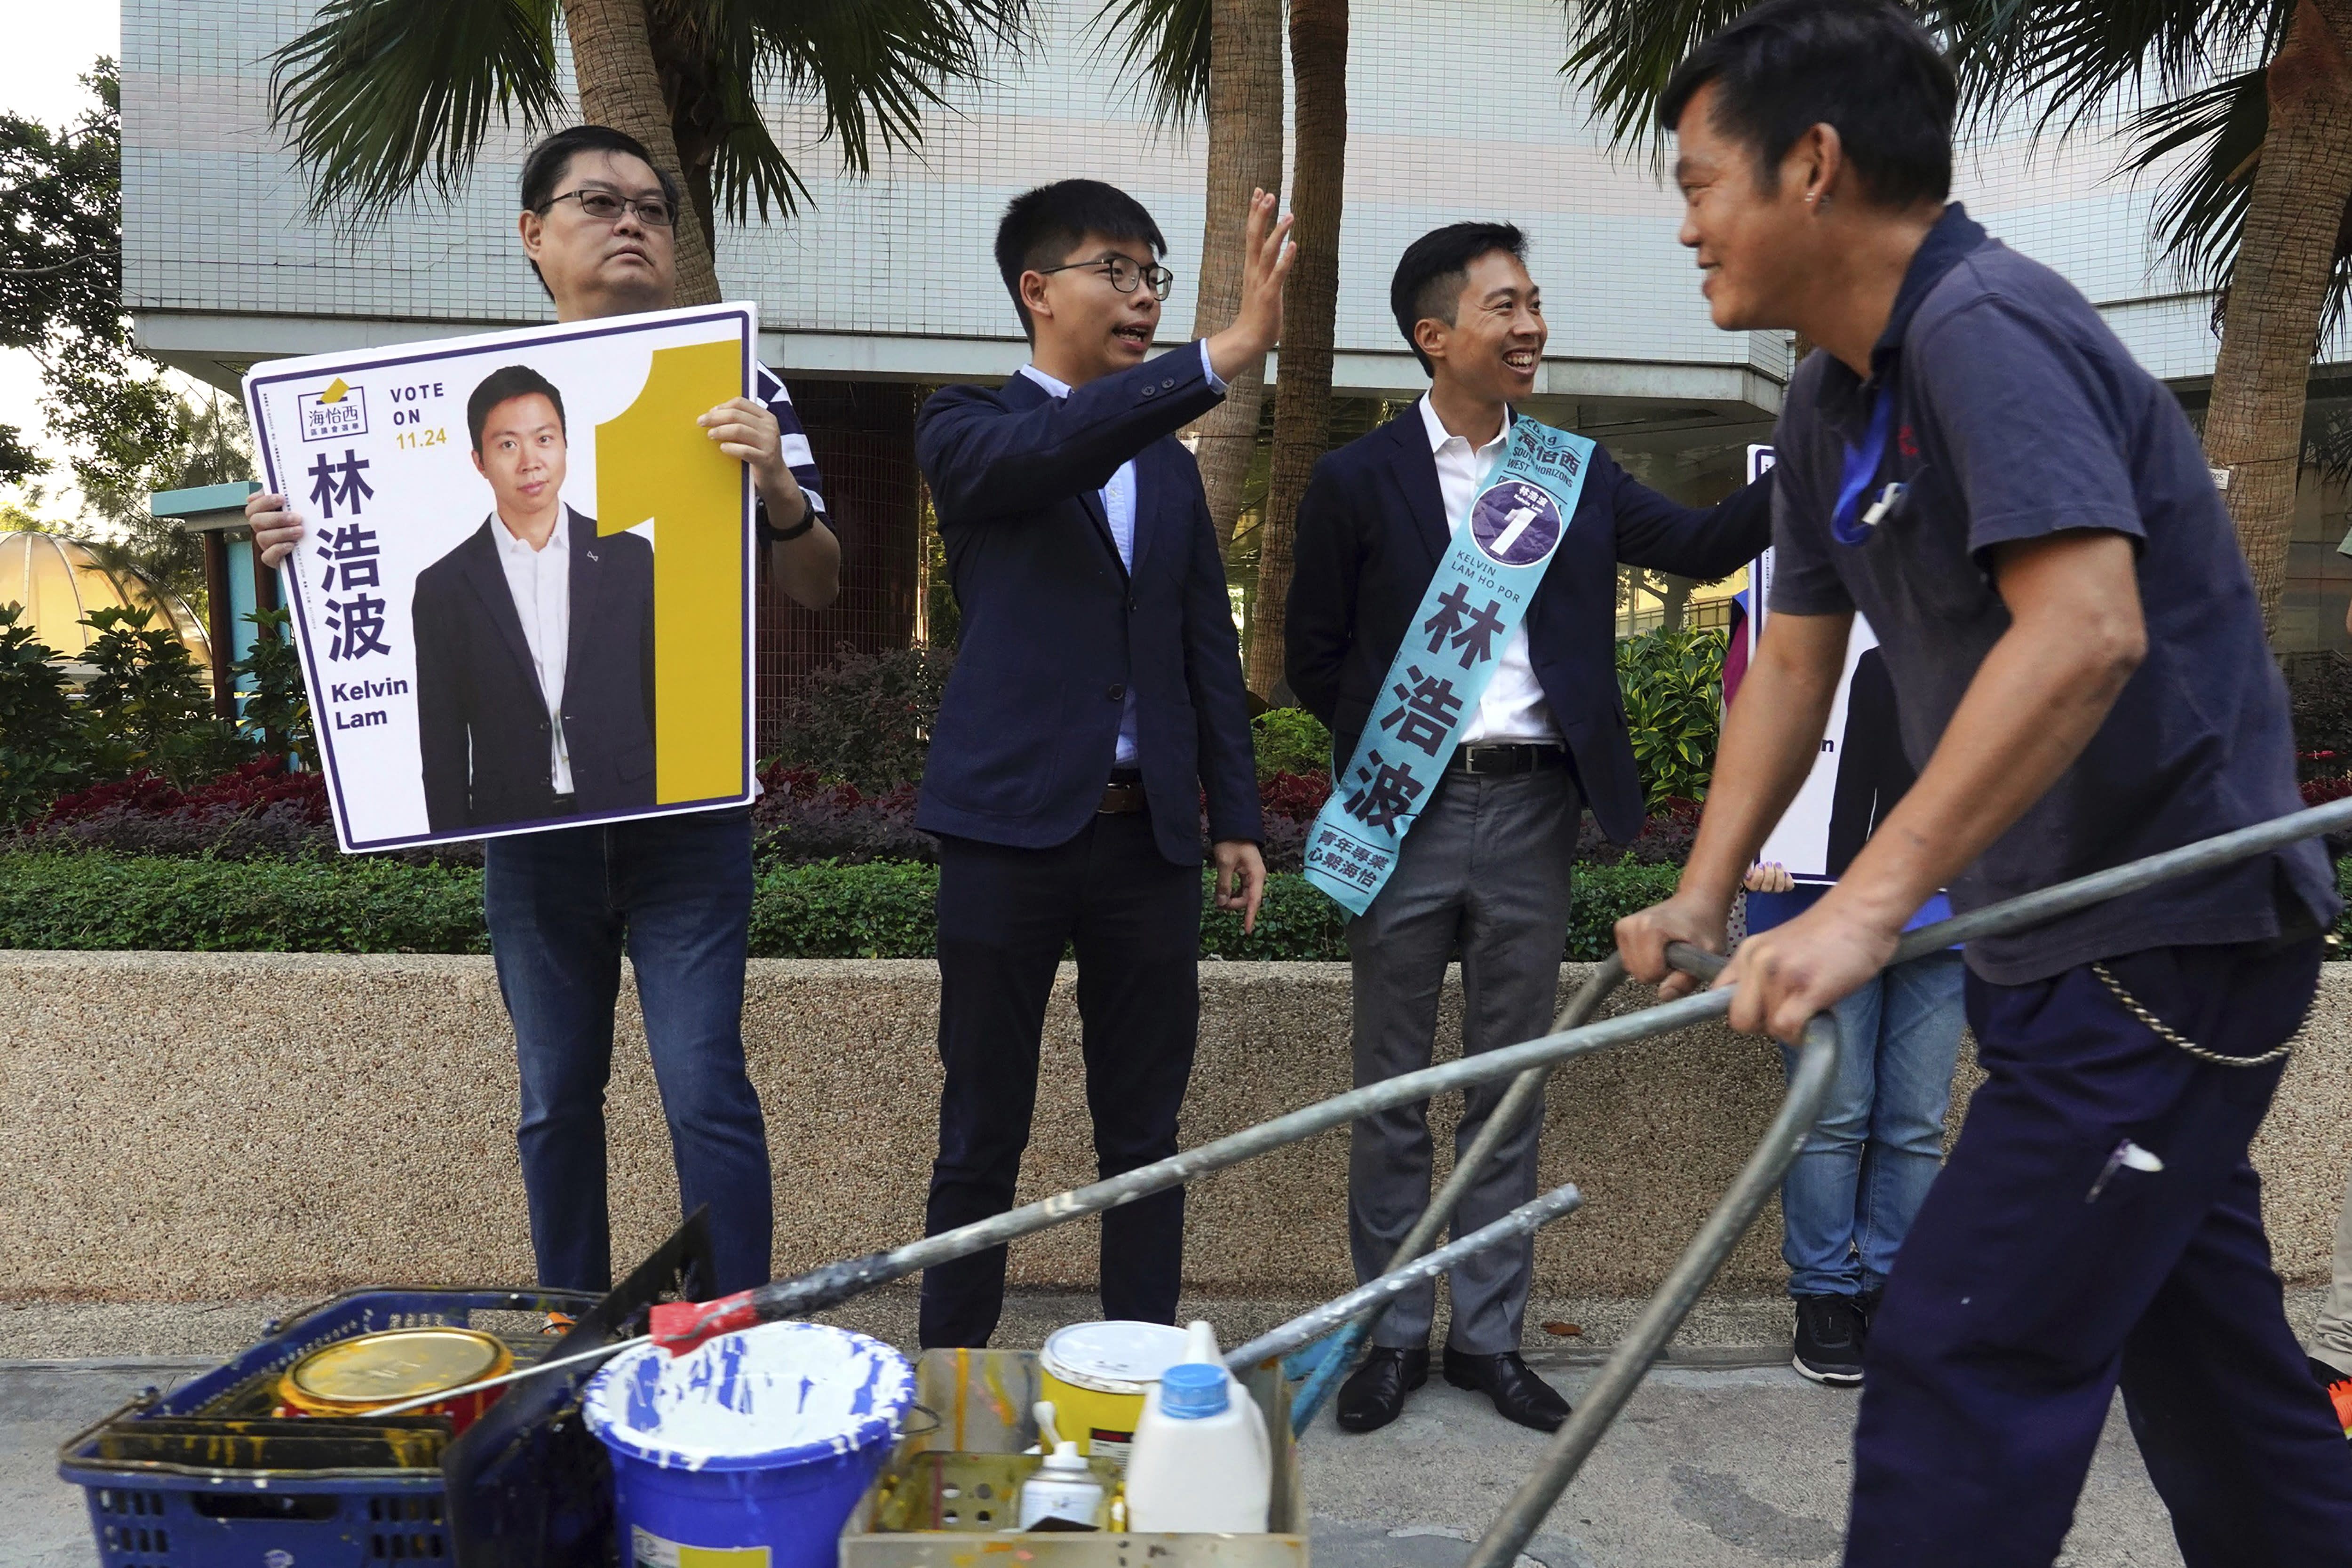 China's Netizens Snub State Media's Interpretation of Hong Kong Election Results